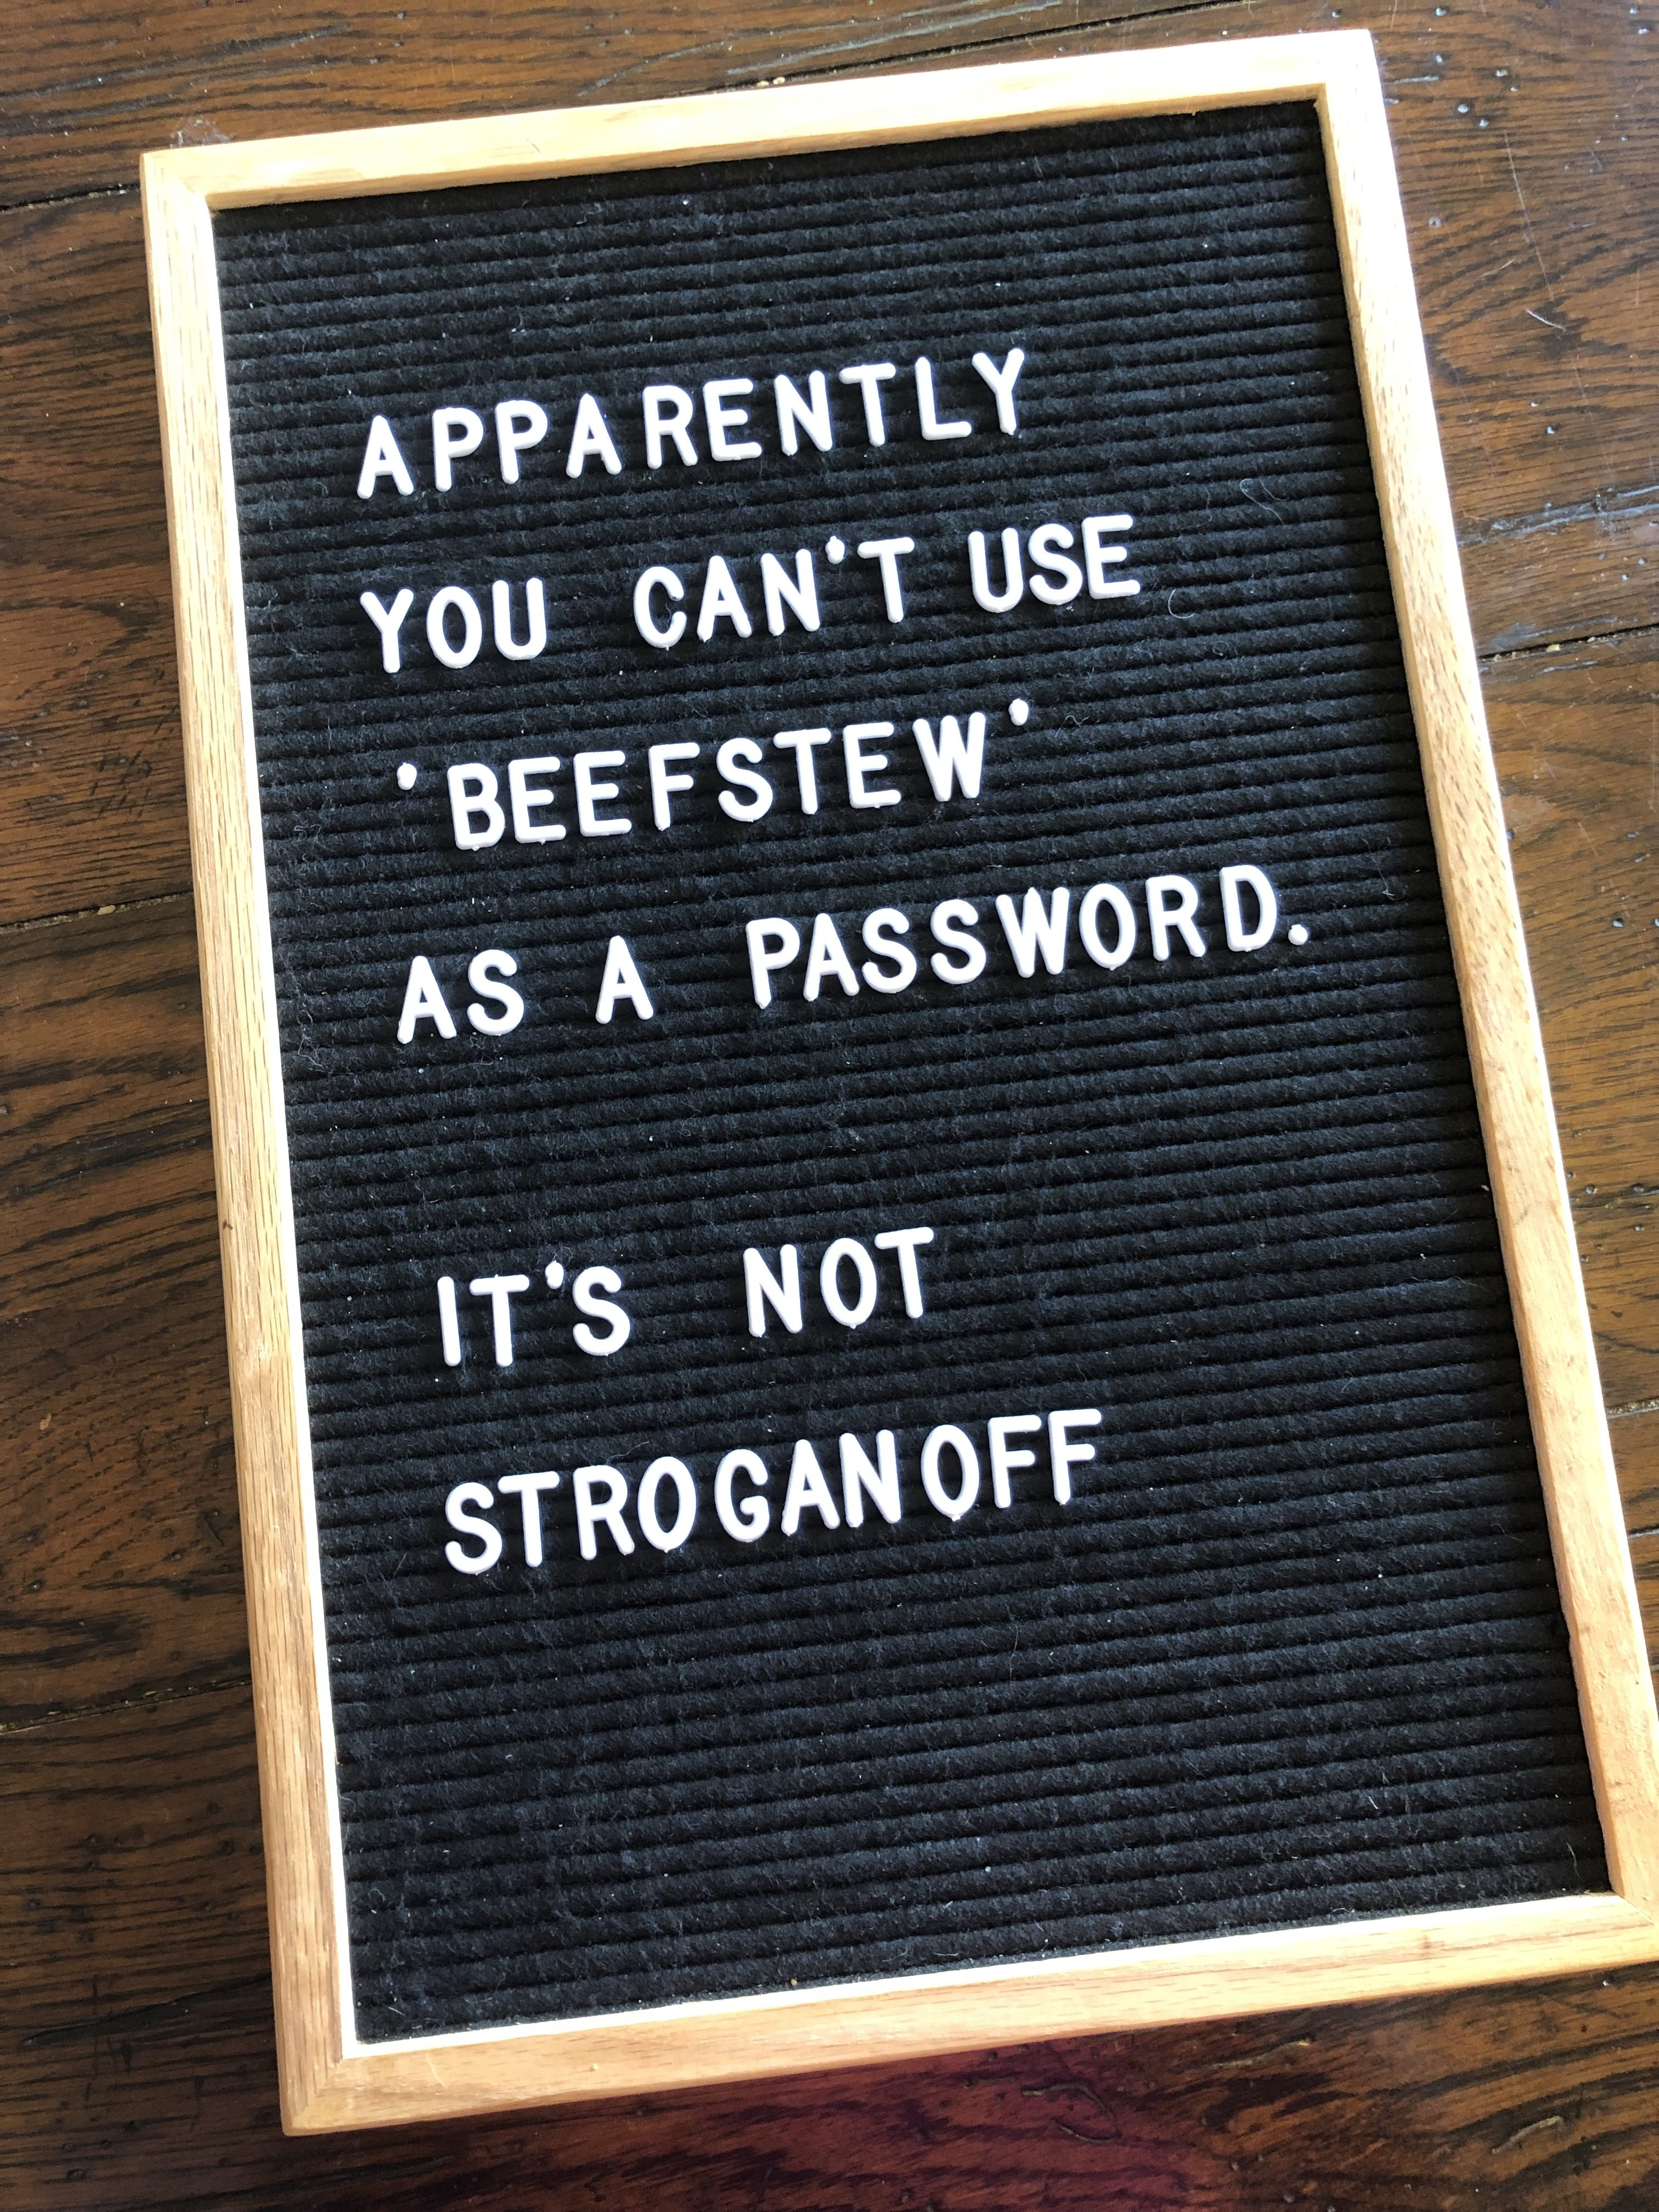 Apparently you can't use beefstew as a password. It's not stroganoff.